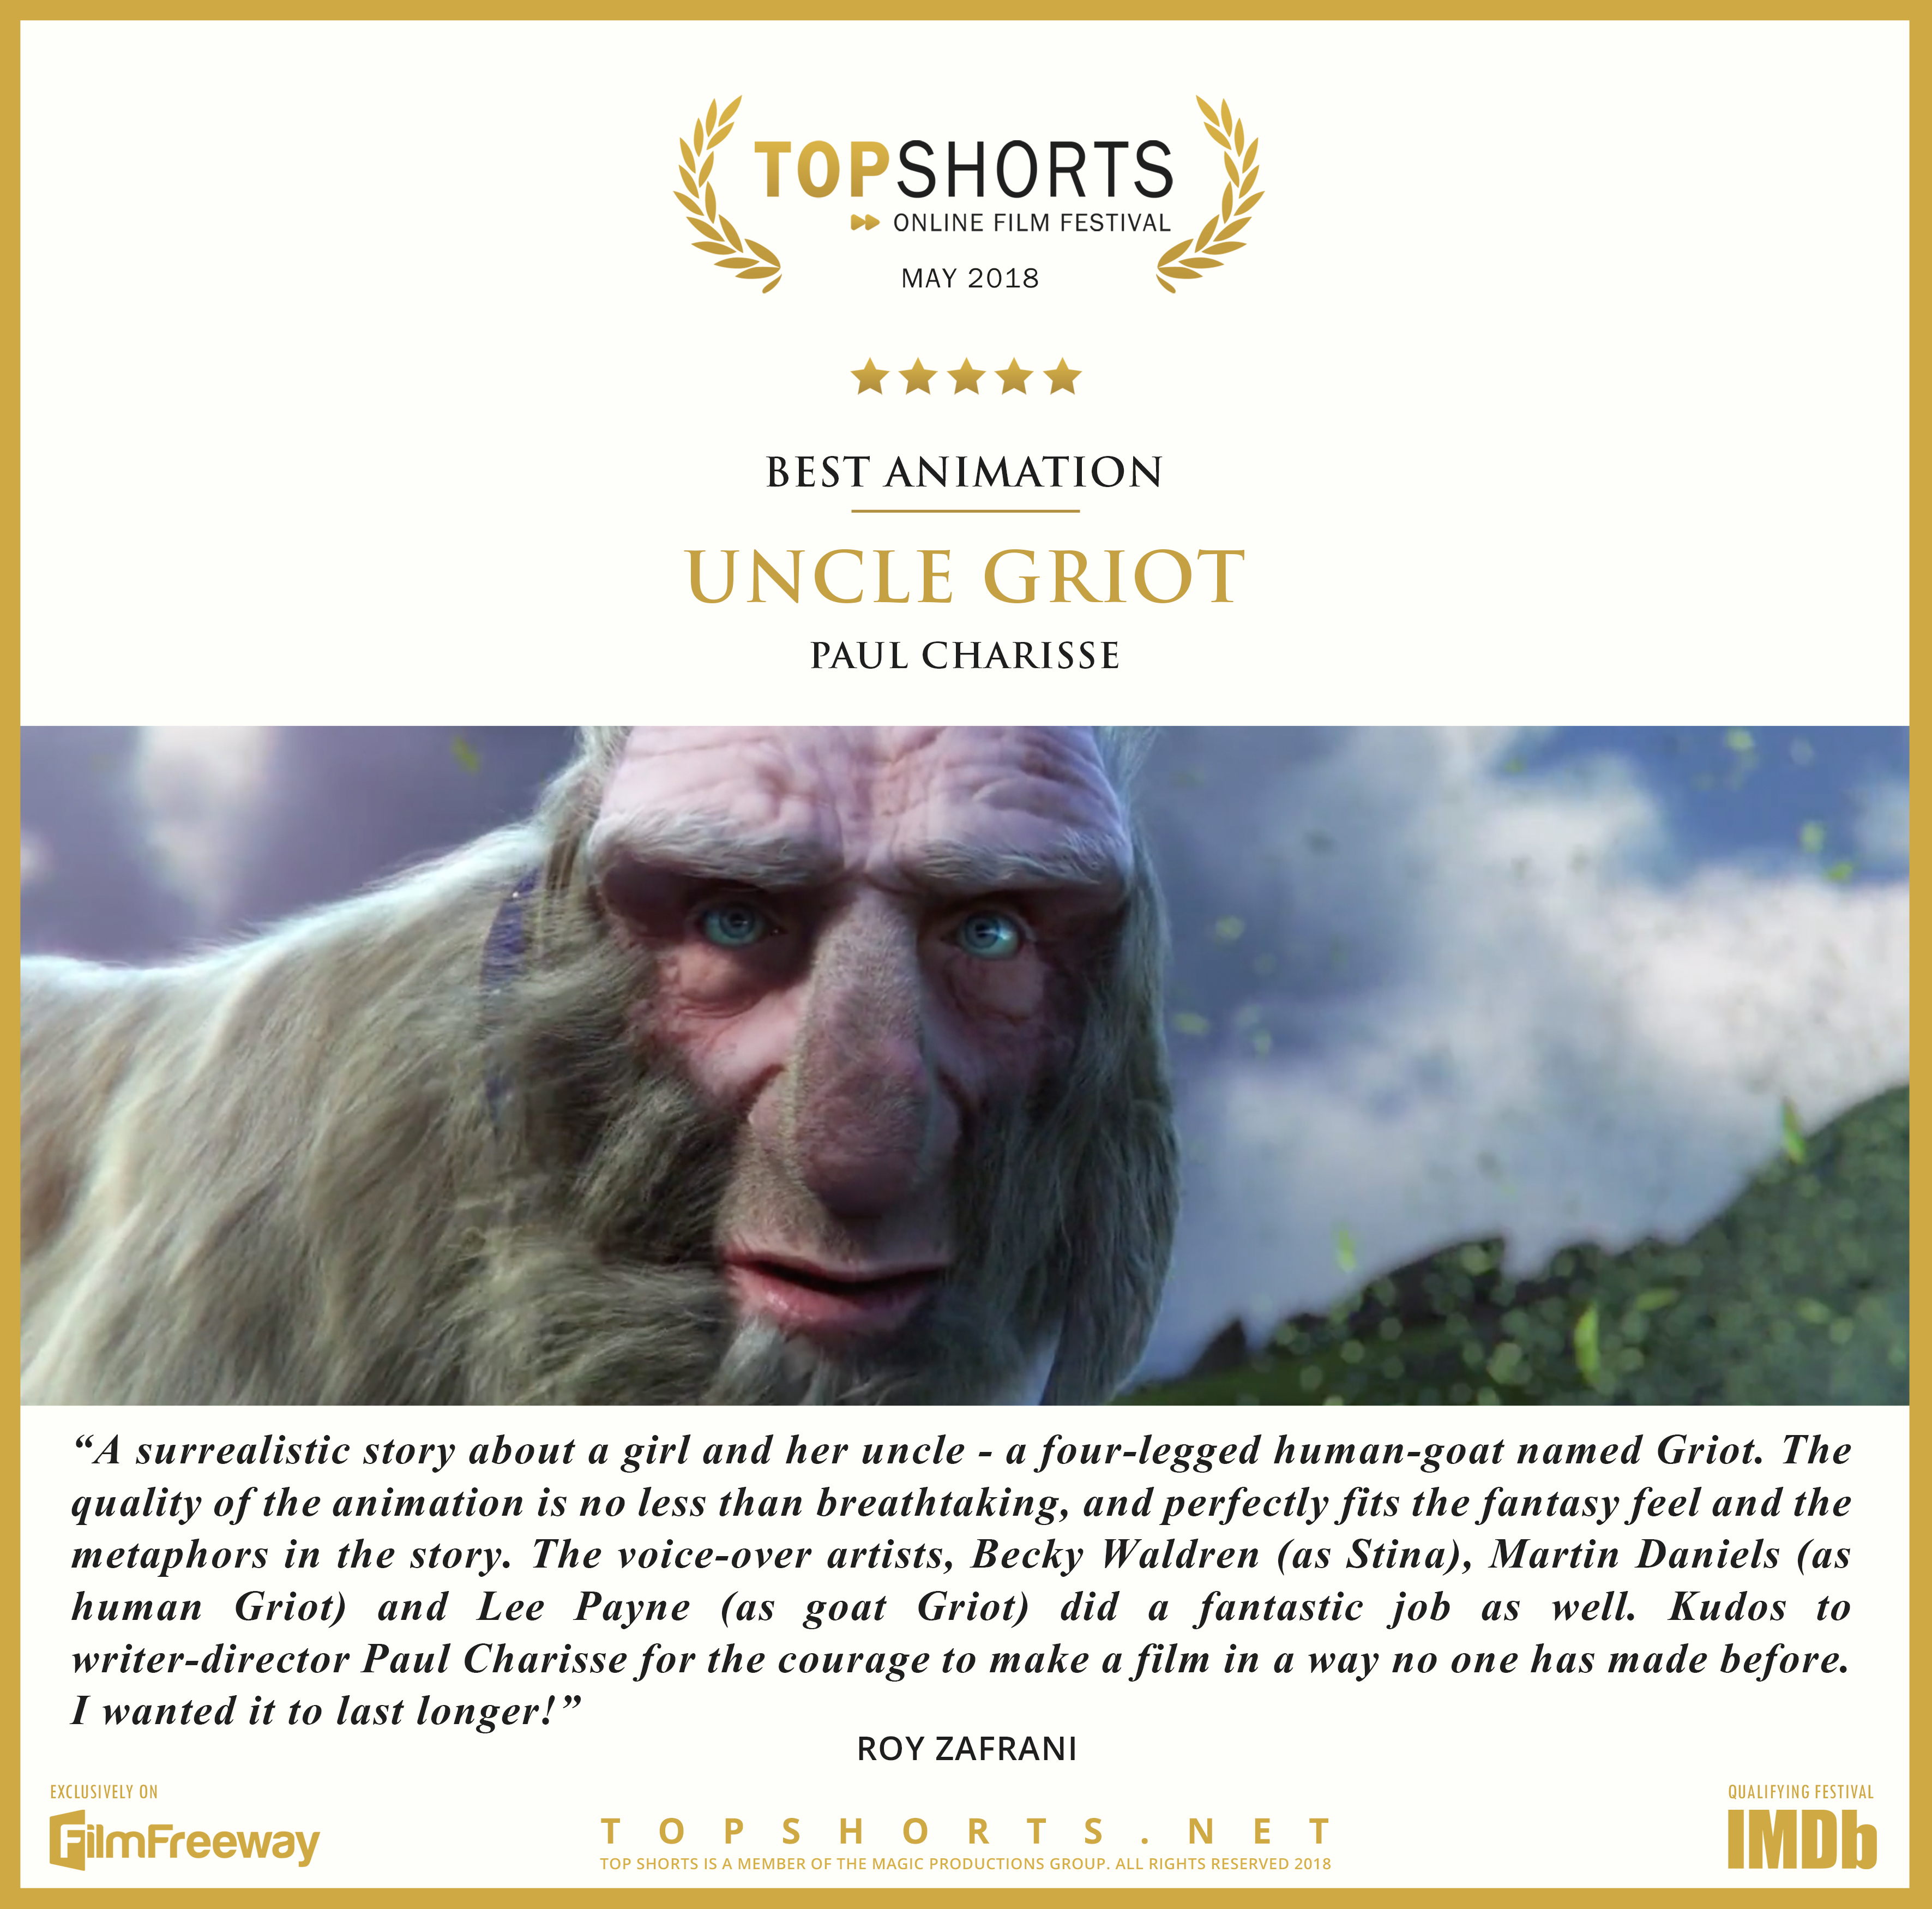 2018 05 Best Animation - Uncle Griot